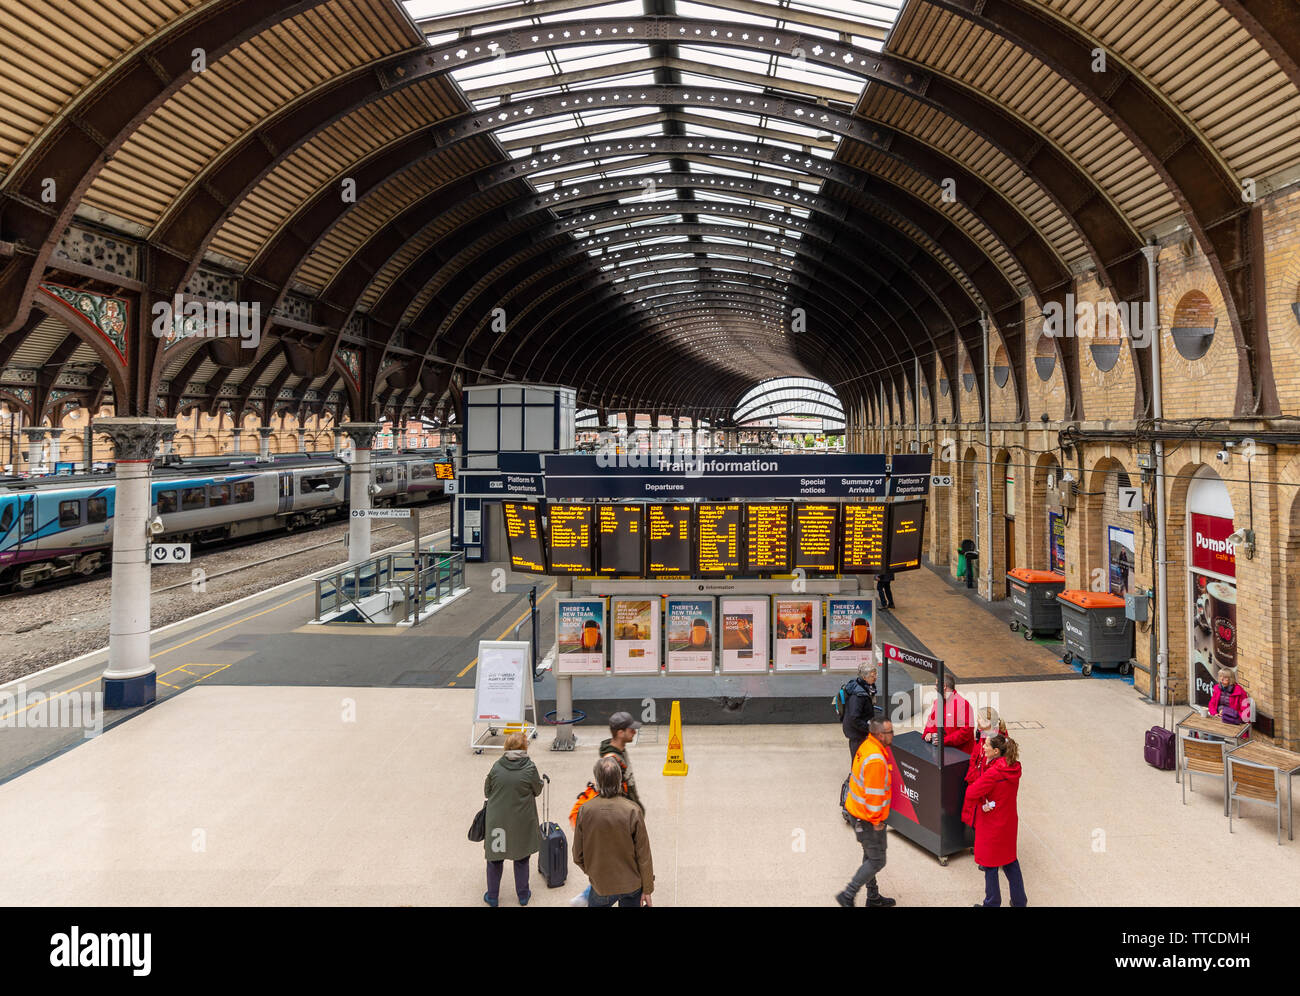 An electronic notice board at York Railway Station giving times of train departures and arrivals.  Passengers check times and a train waits to depart. - Stock Image